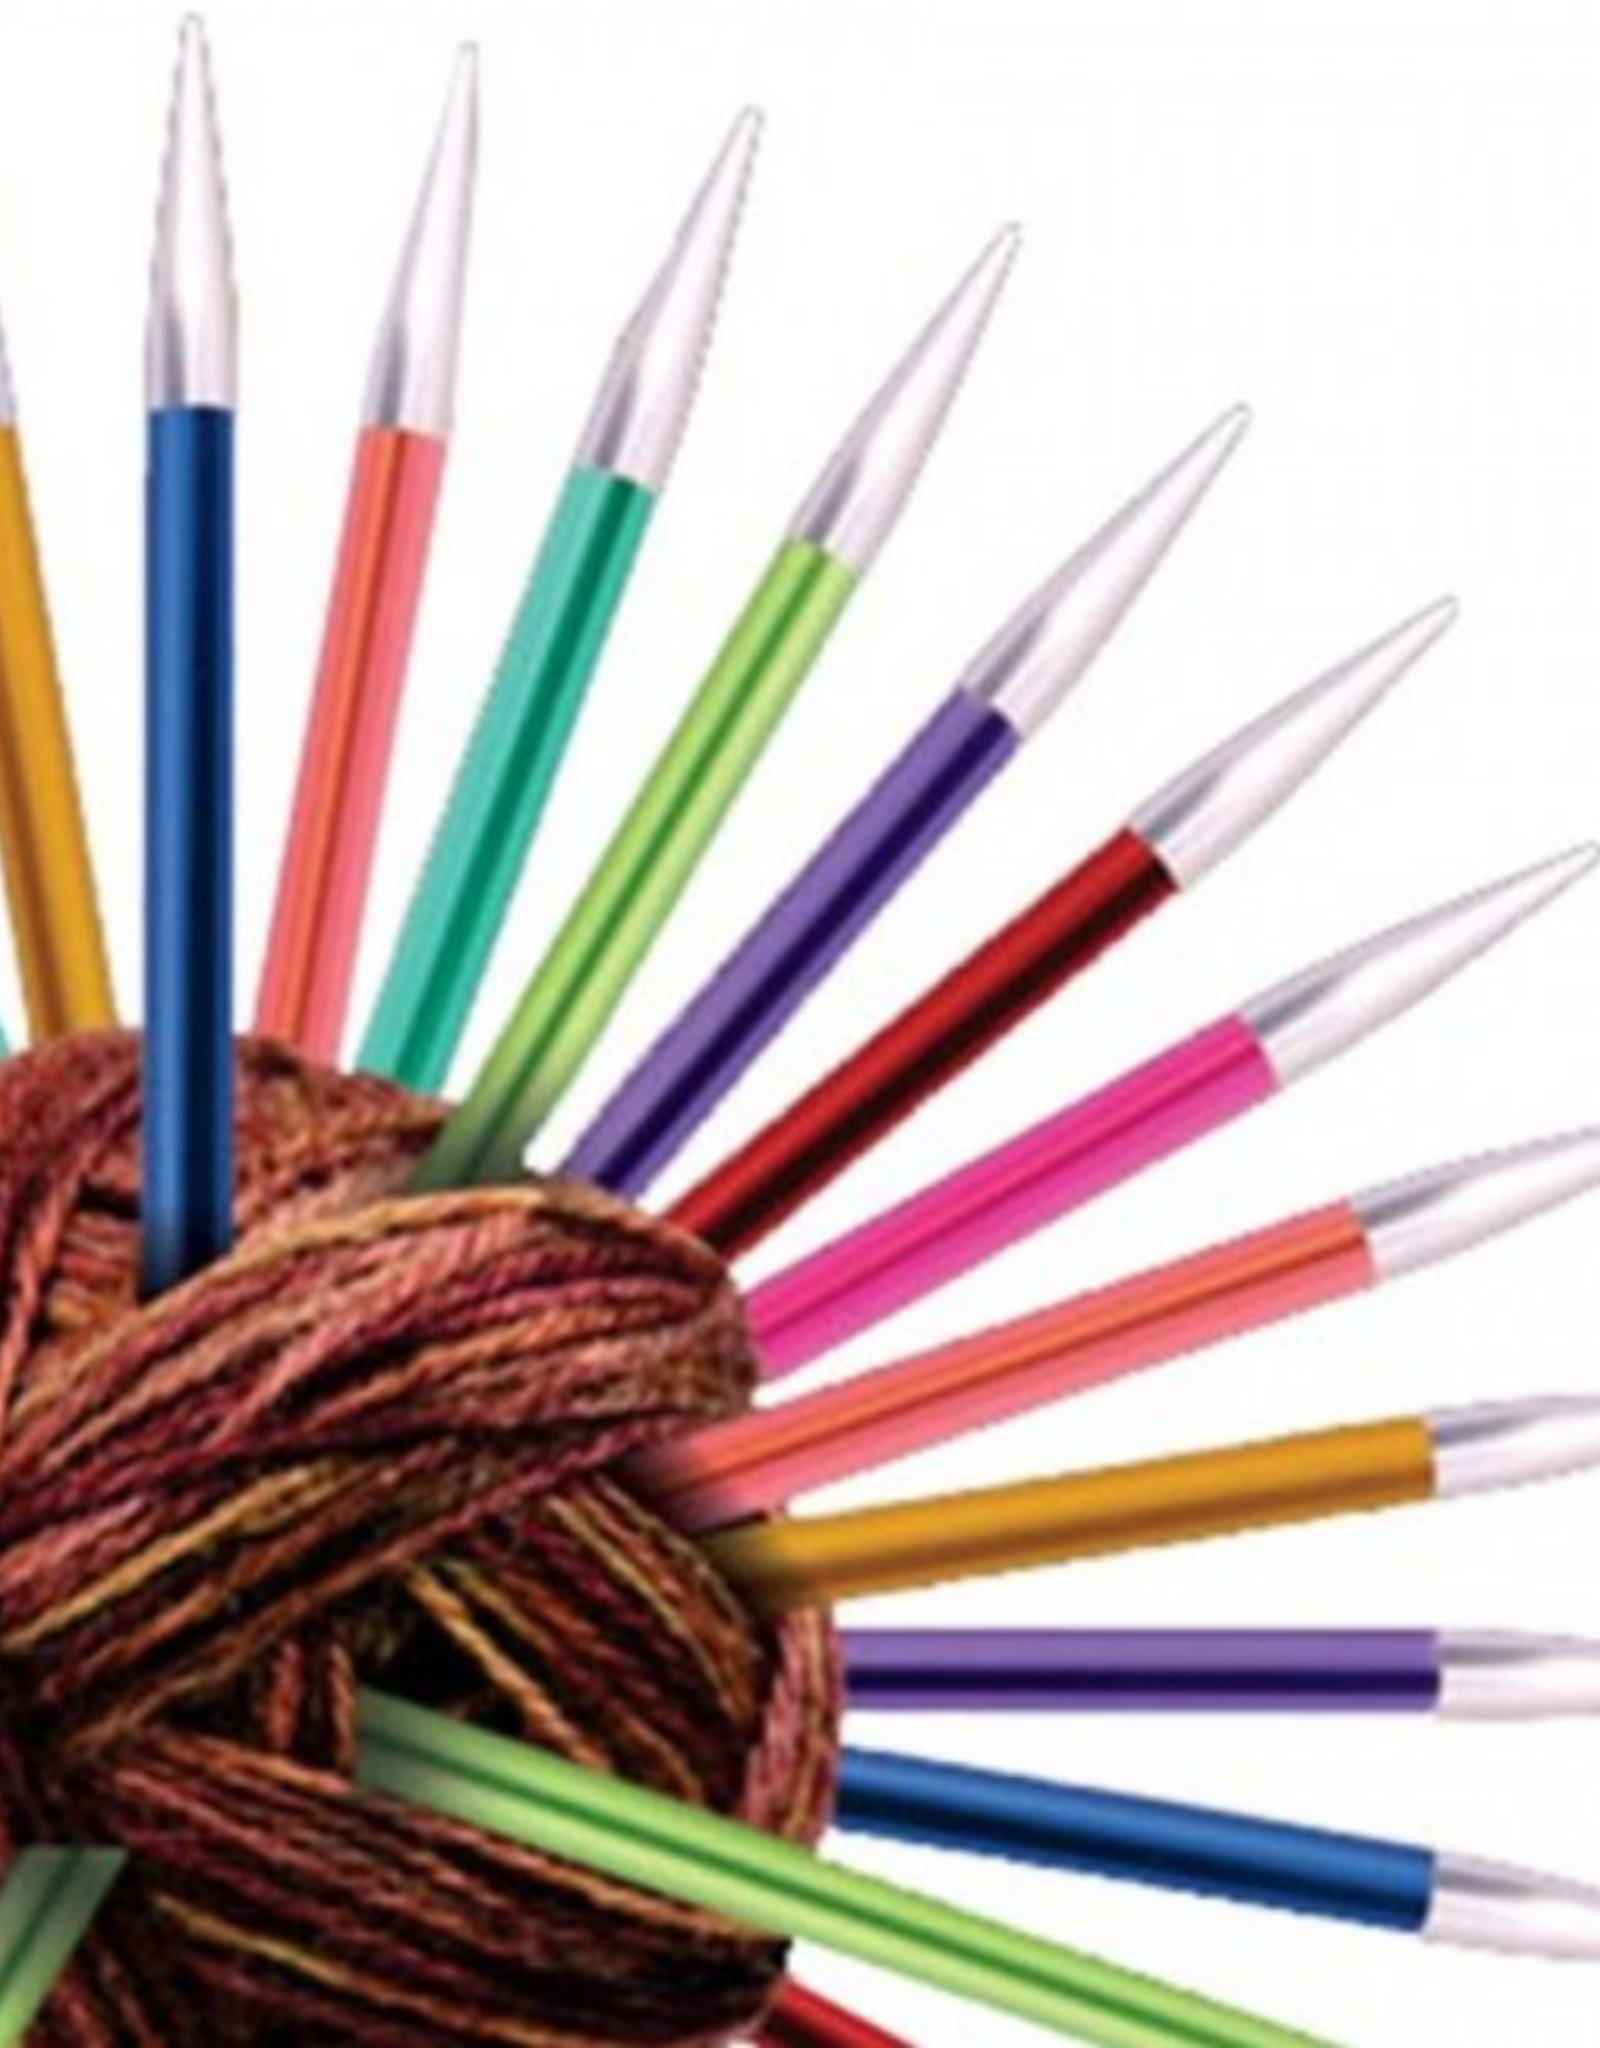 Zing Fixed Circular Needles by Knitter's Pride